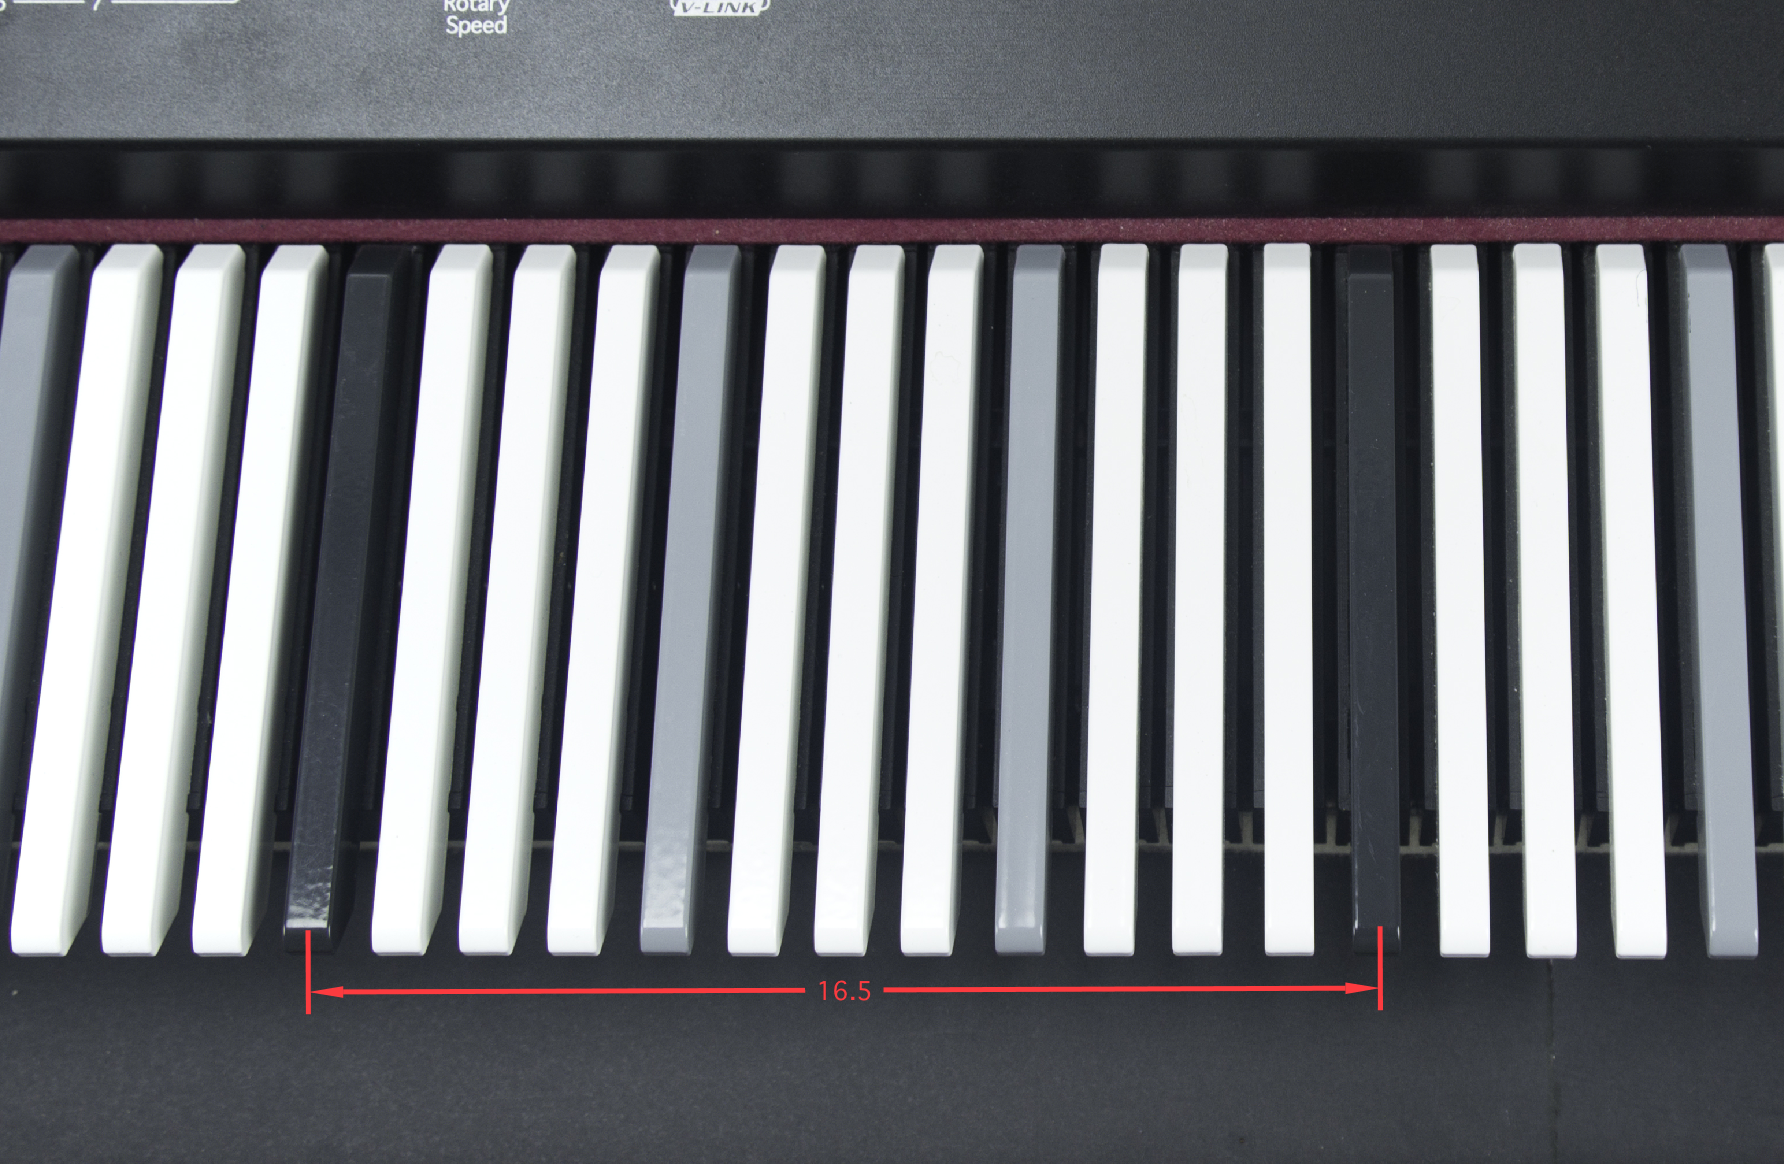 Blog - Dodeka Keyboard: What are the dimensions of the keys